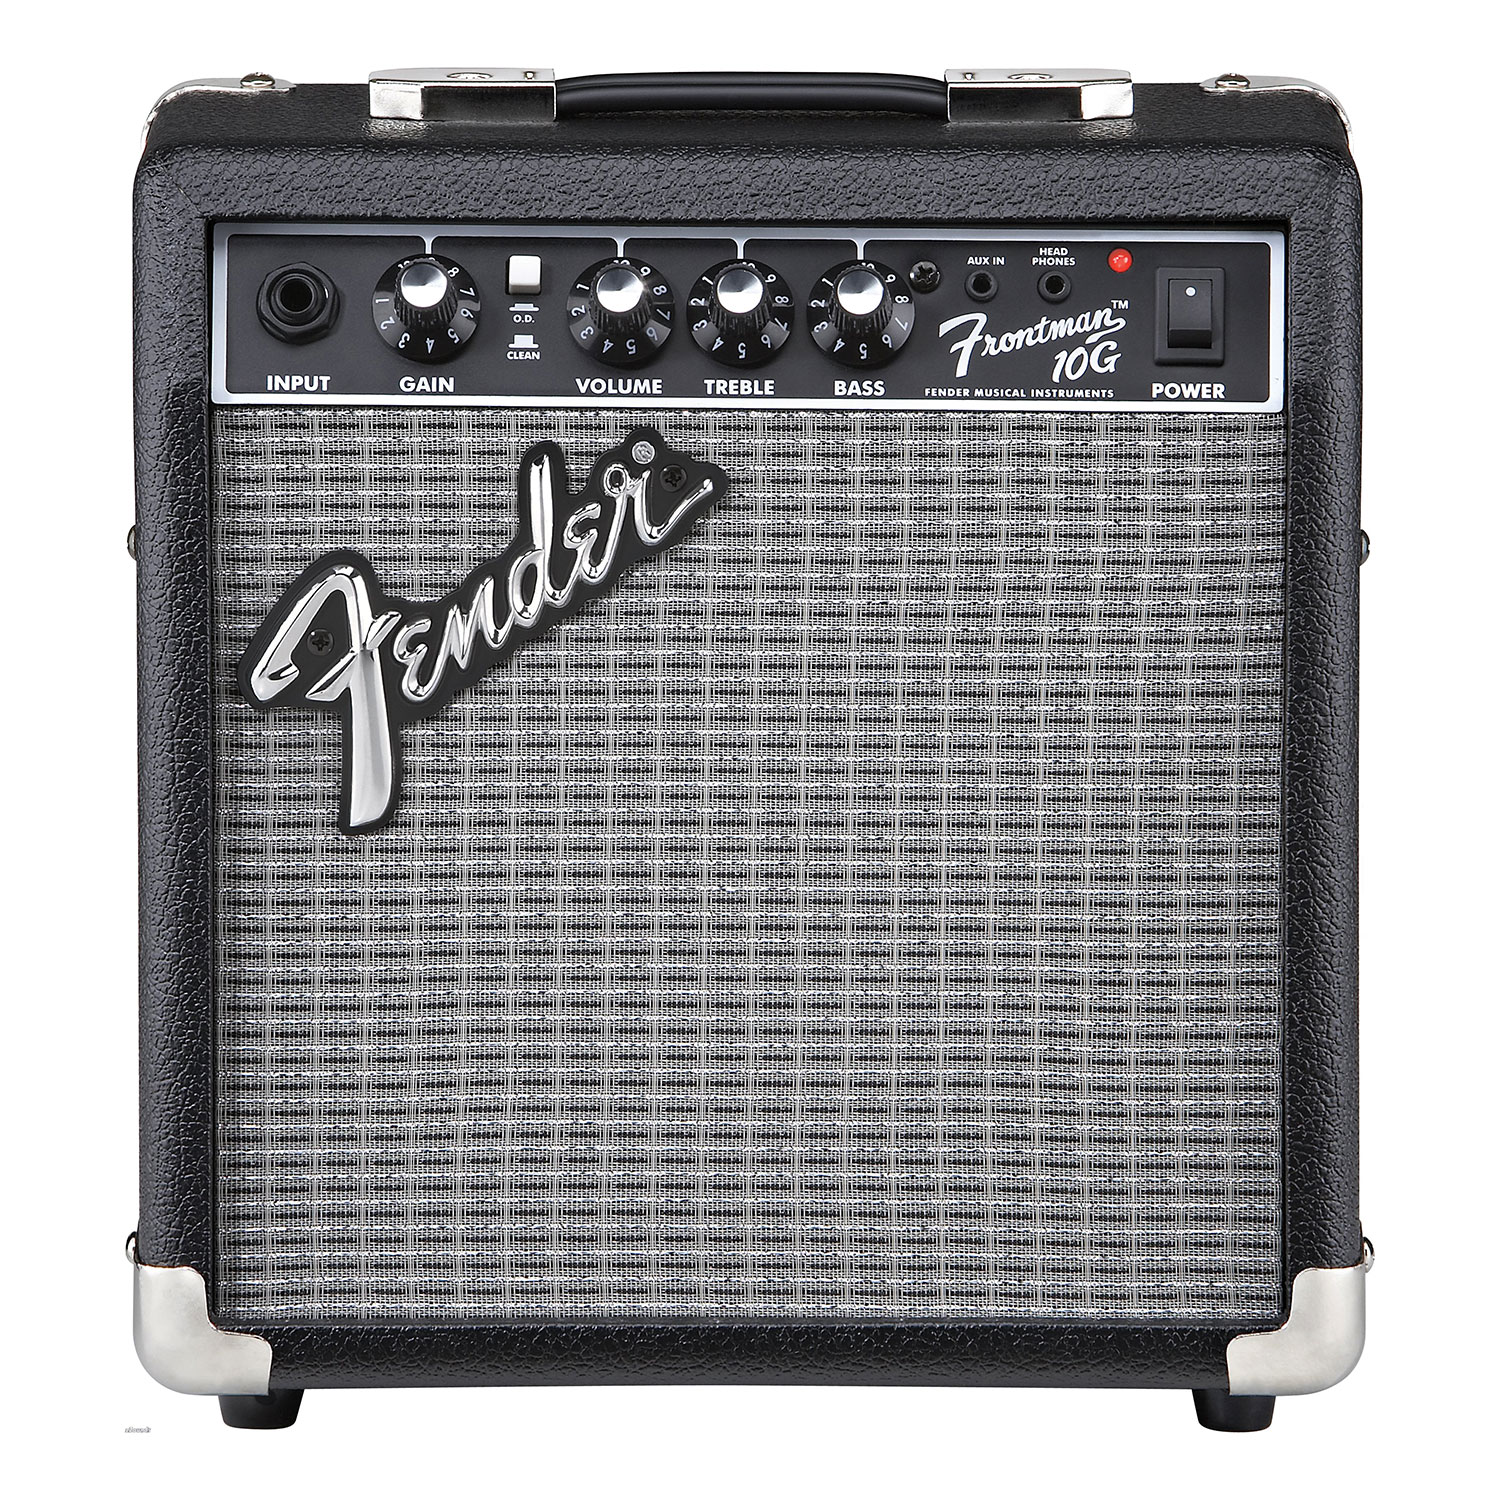 Amplifiers Guitar Bass Mini Amps Best Buy Canada 32 Watt Amplifier Fender Frontman 10g 10 Amp